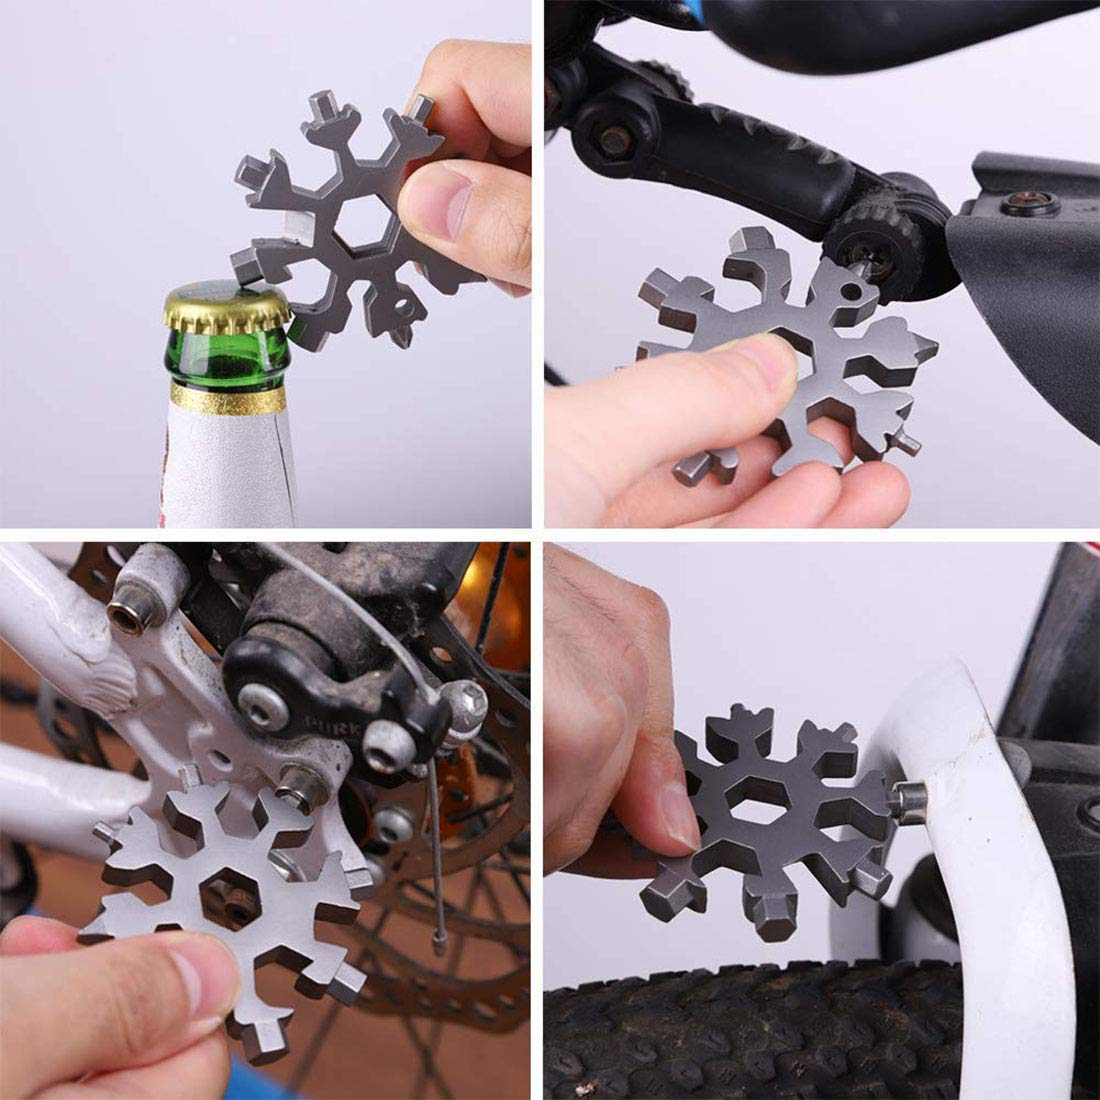 Multifunction Snowflake Screwdriver Tool 18-in-1 Portable Stainless Steel Combination Hand Tool for Bike Outdoor Adventure